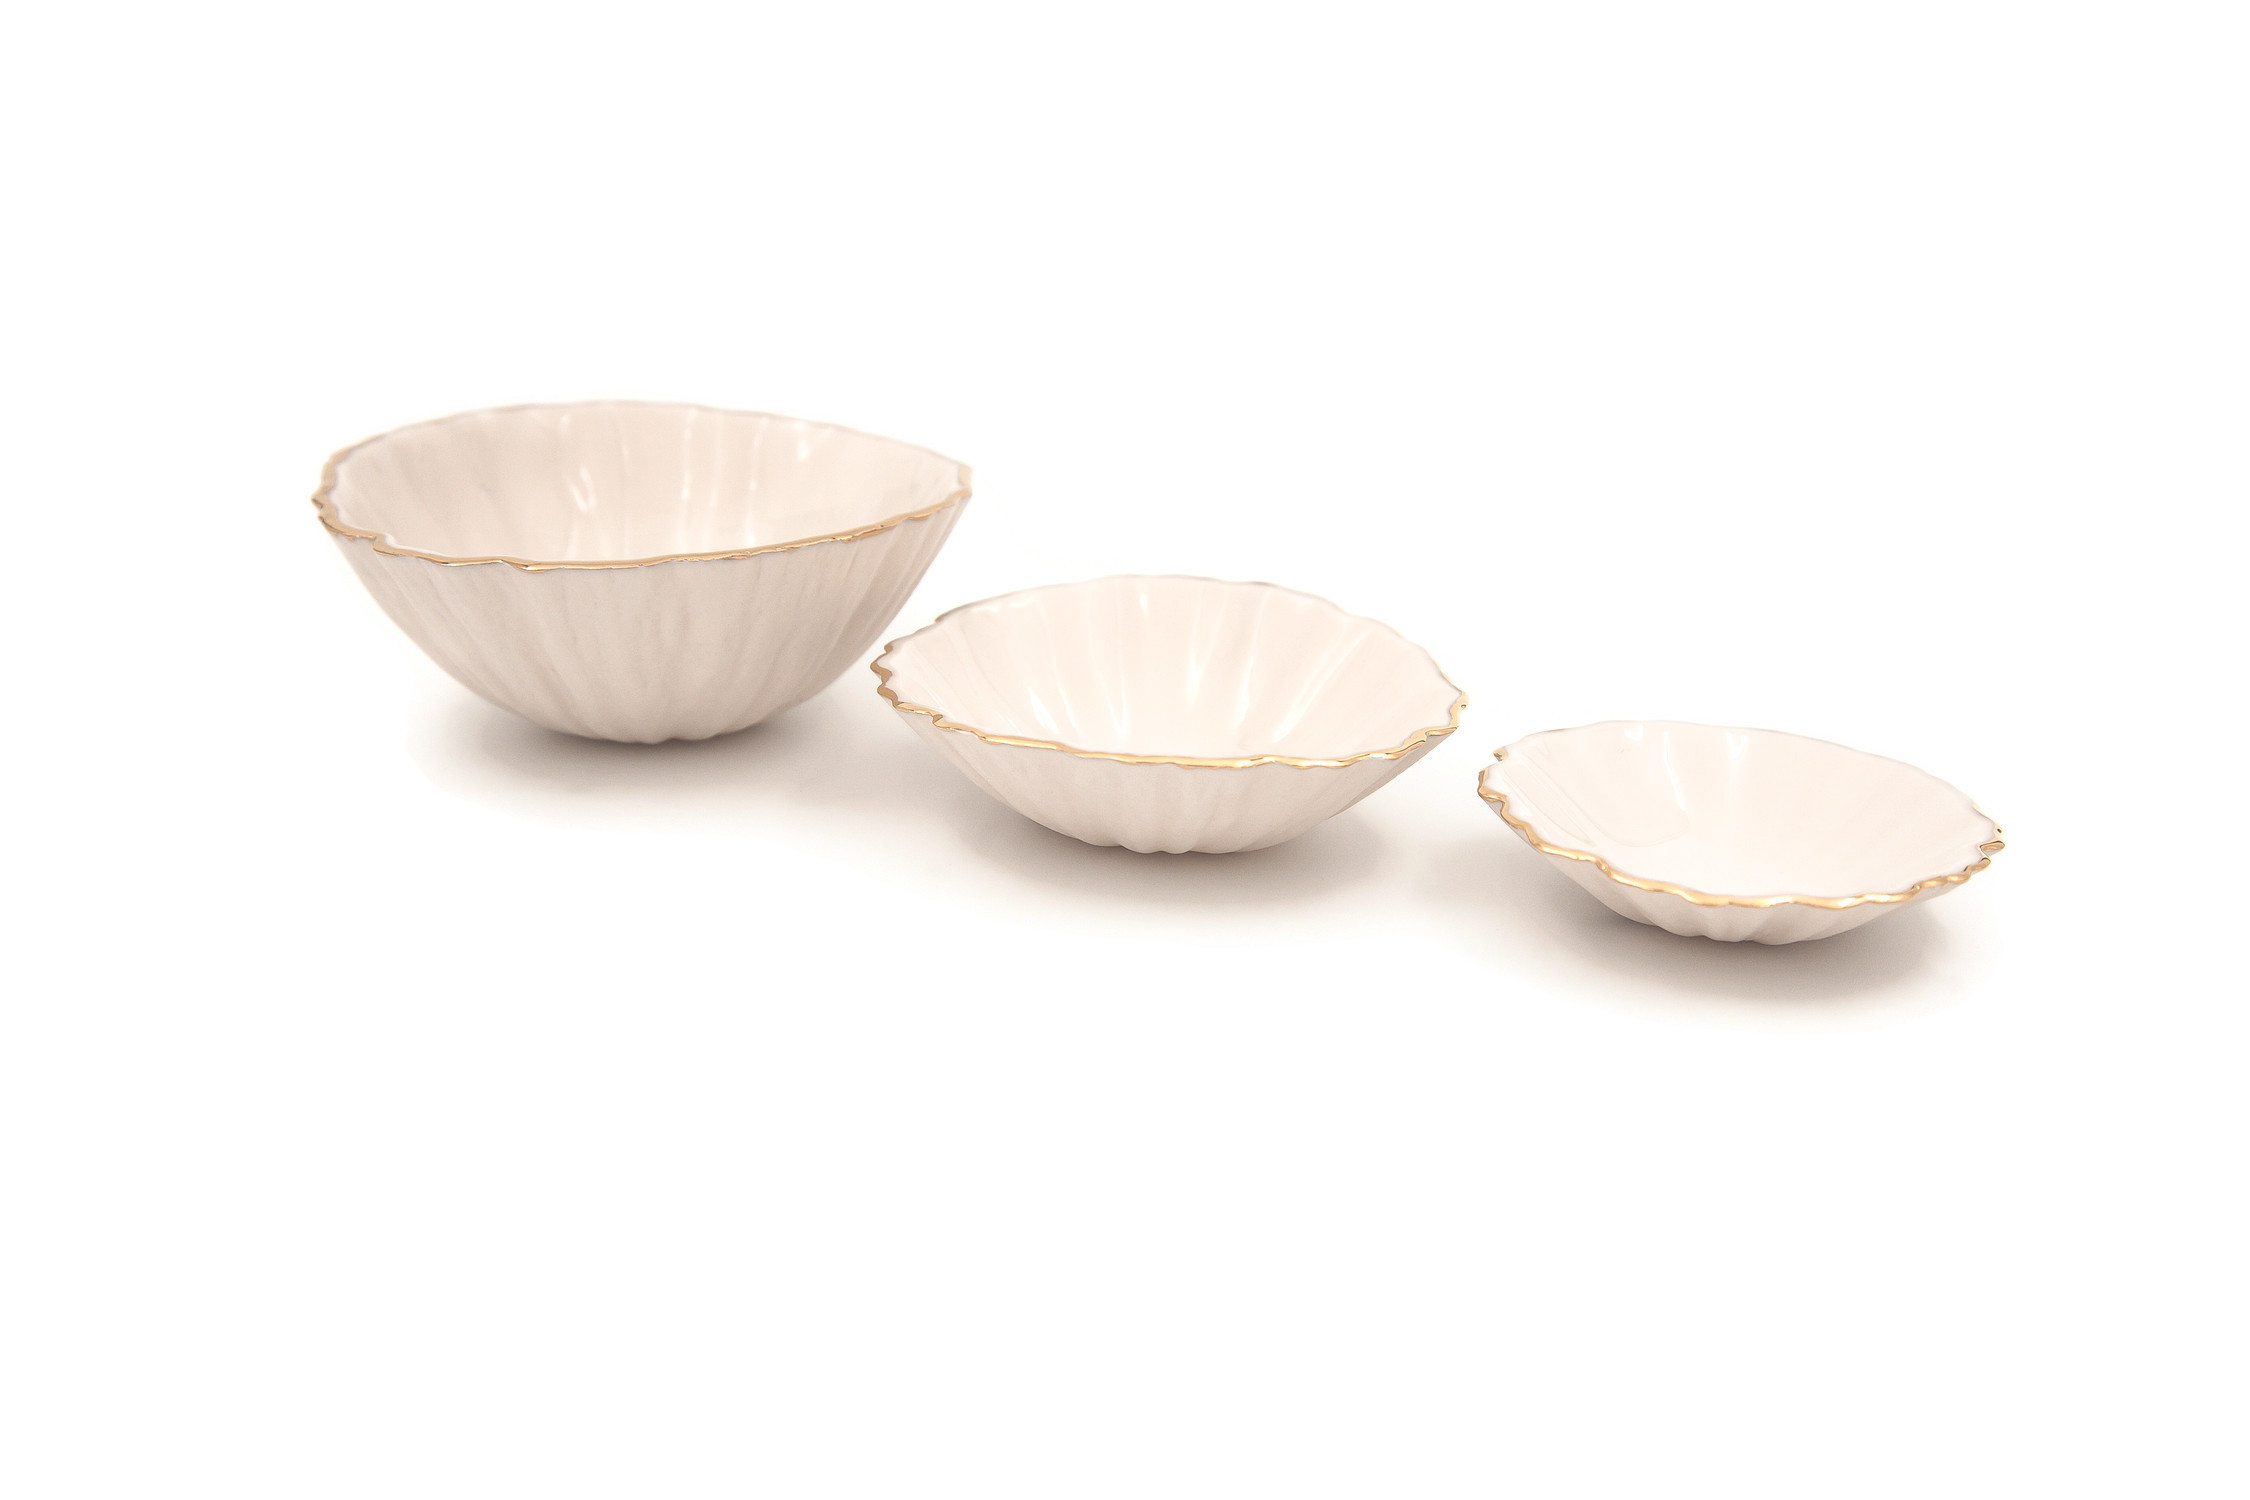 Handmade Porcelain Nesting Bowls (Set of 3)...